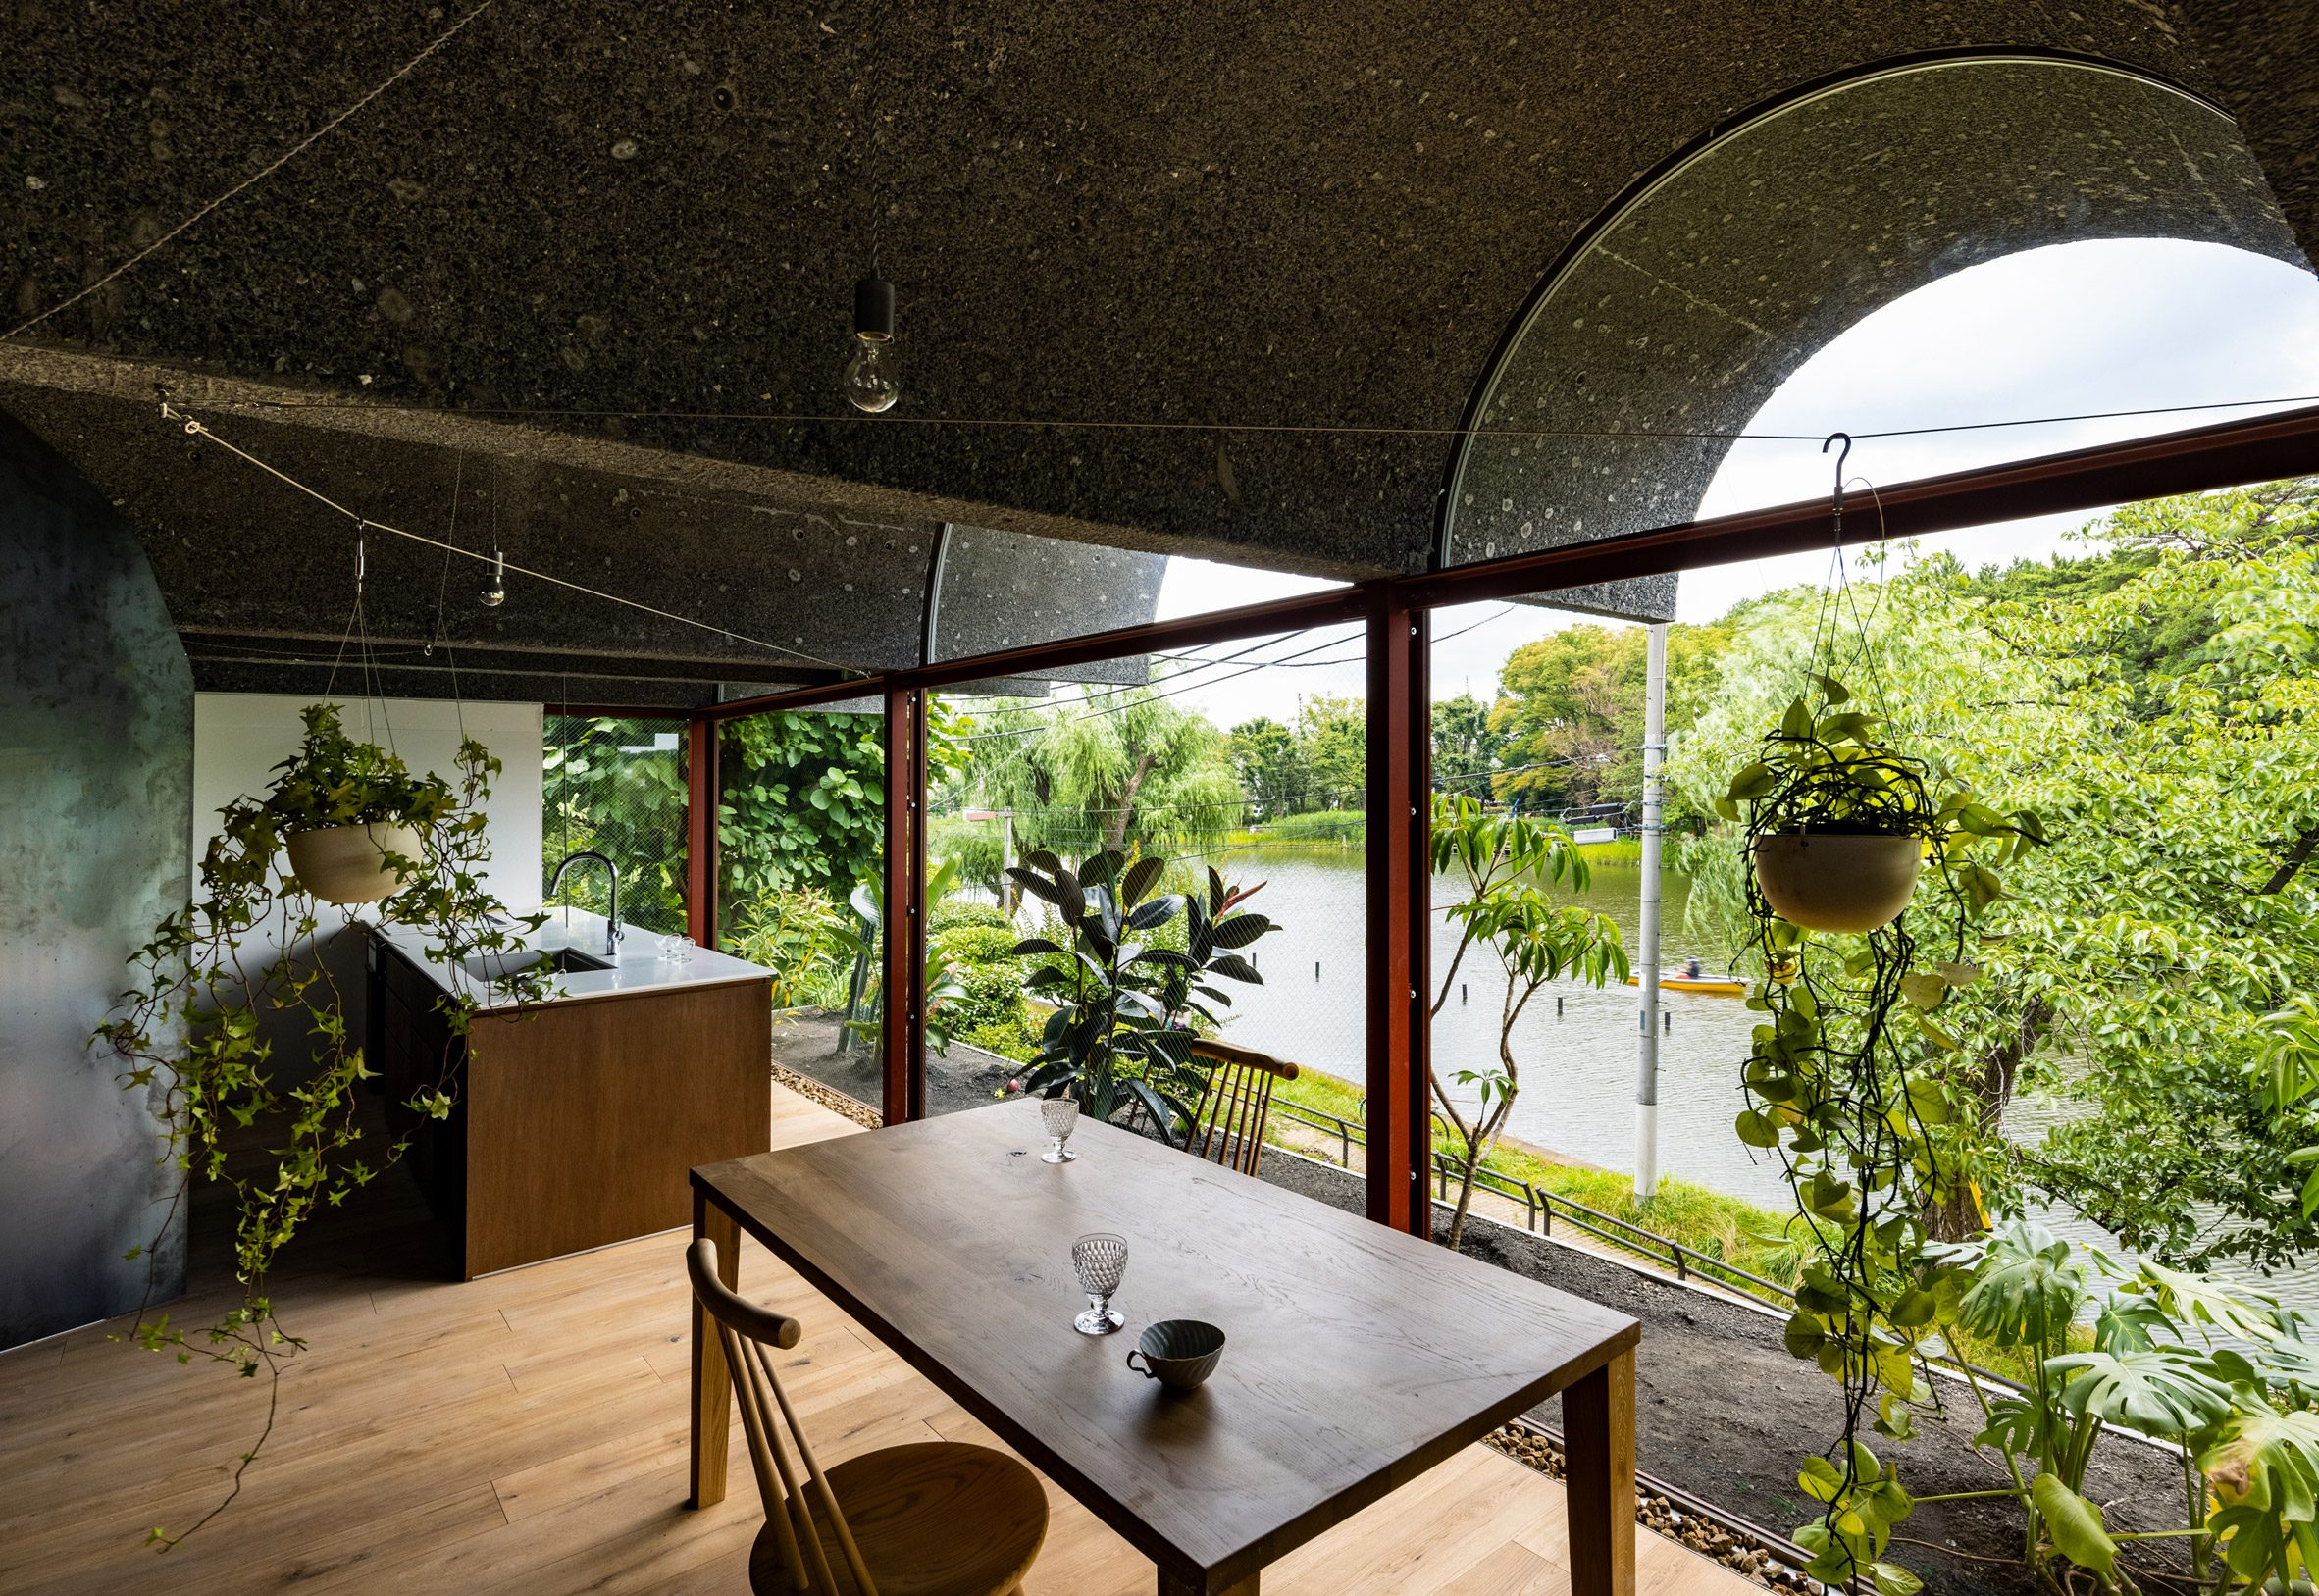 Living spaces with large windows